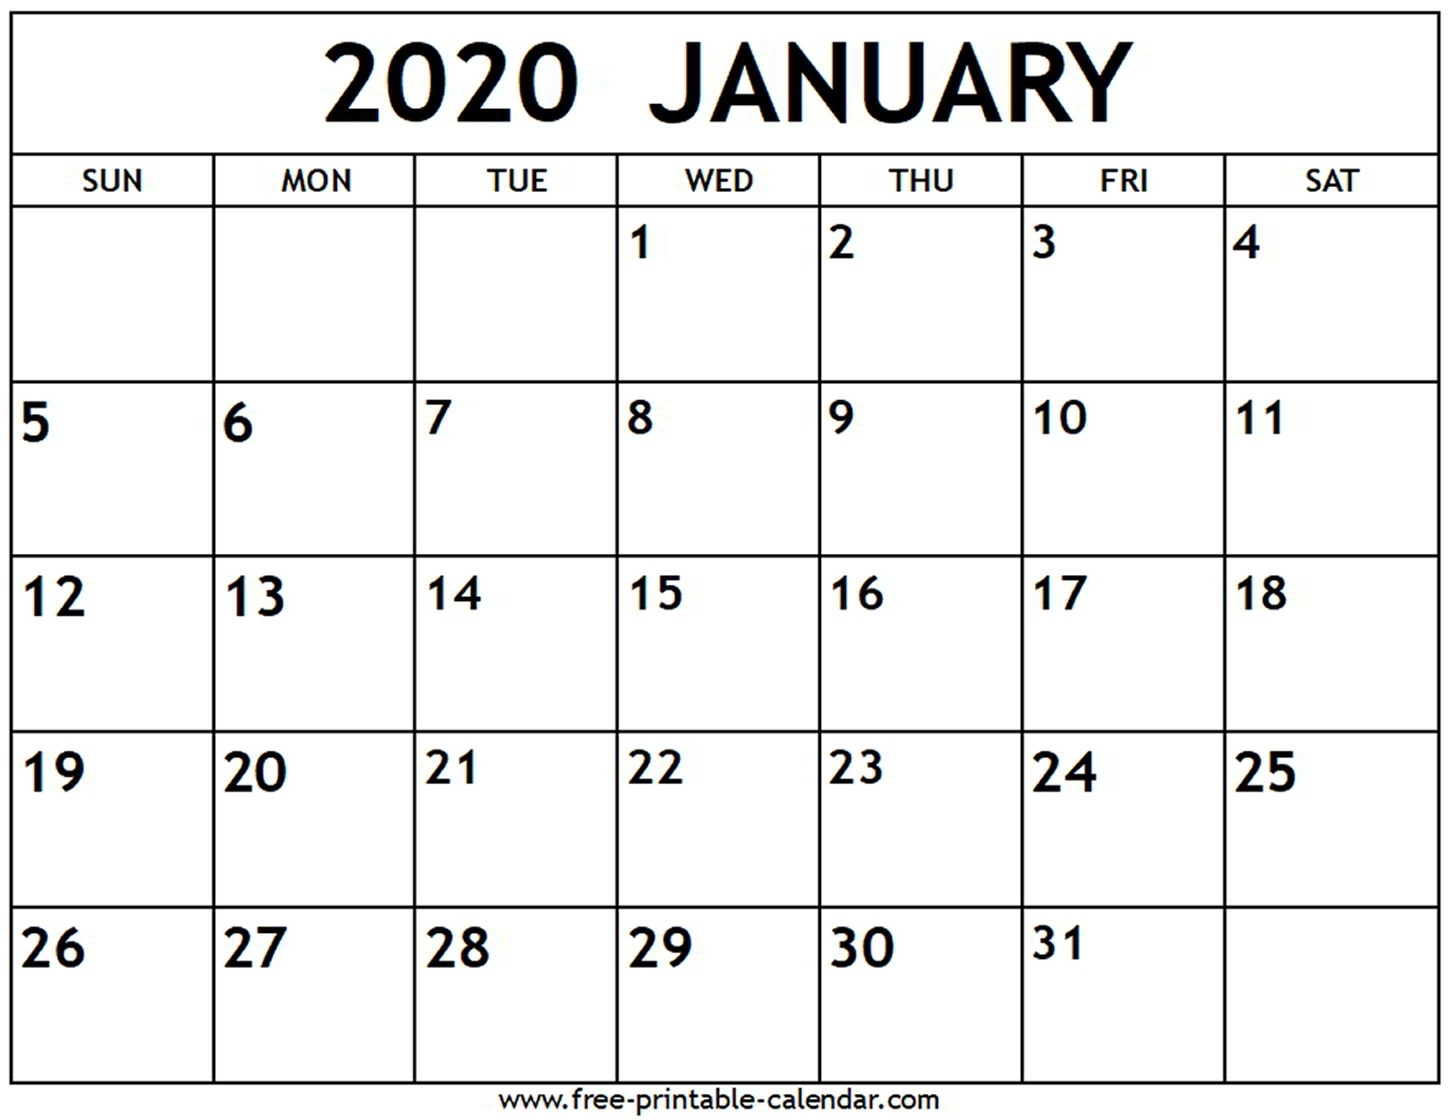 January 2020 Calendar - Free-Printable-Calendar pertaining to Free Printable Calendar With Lines